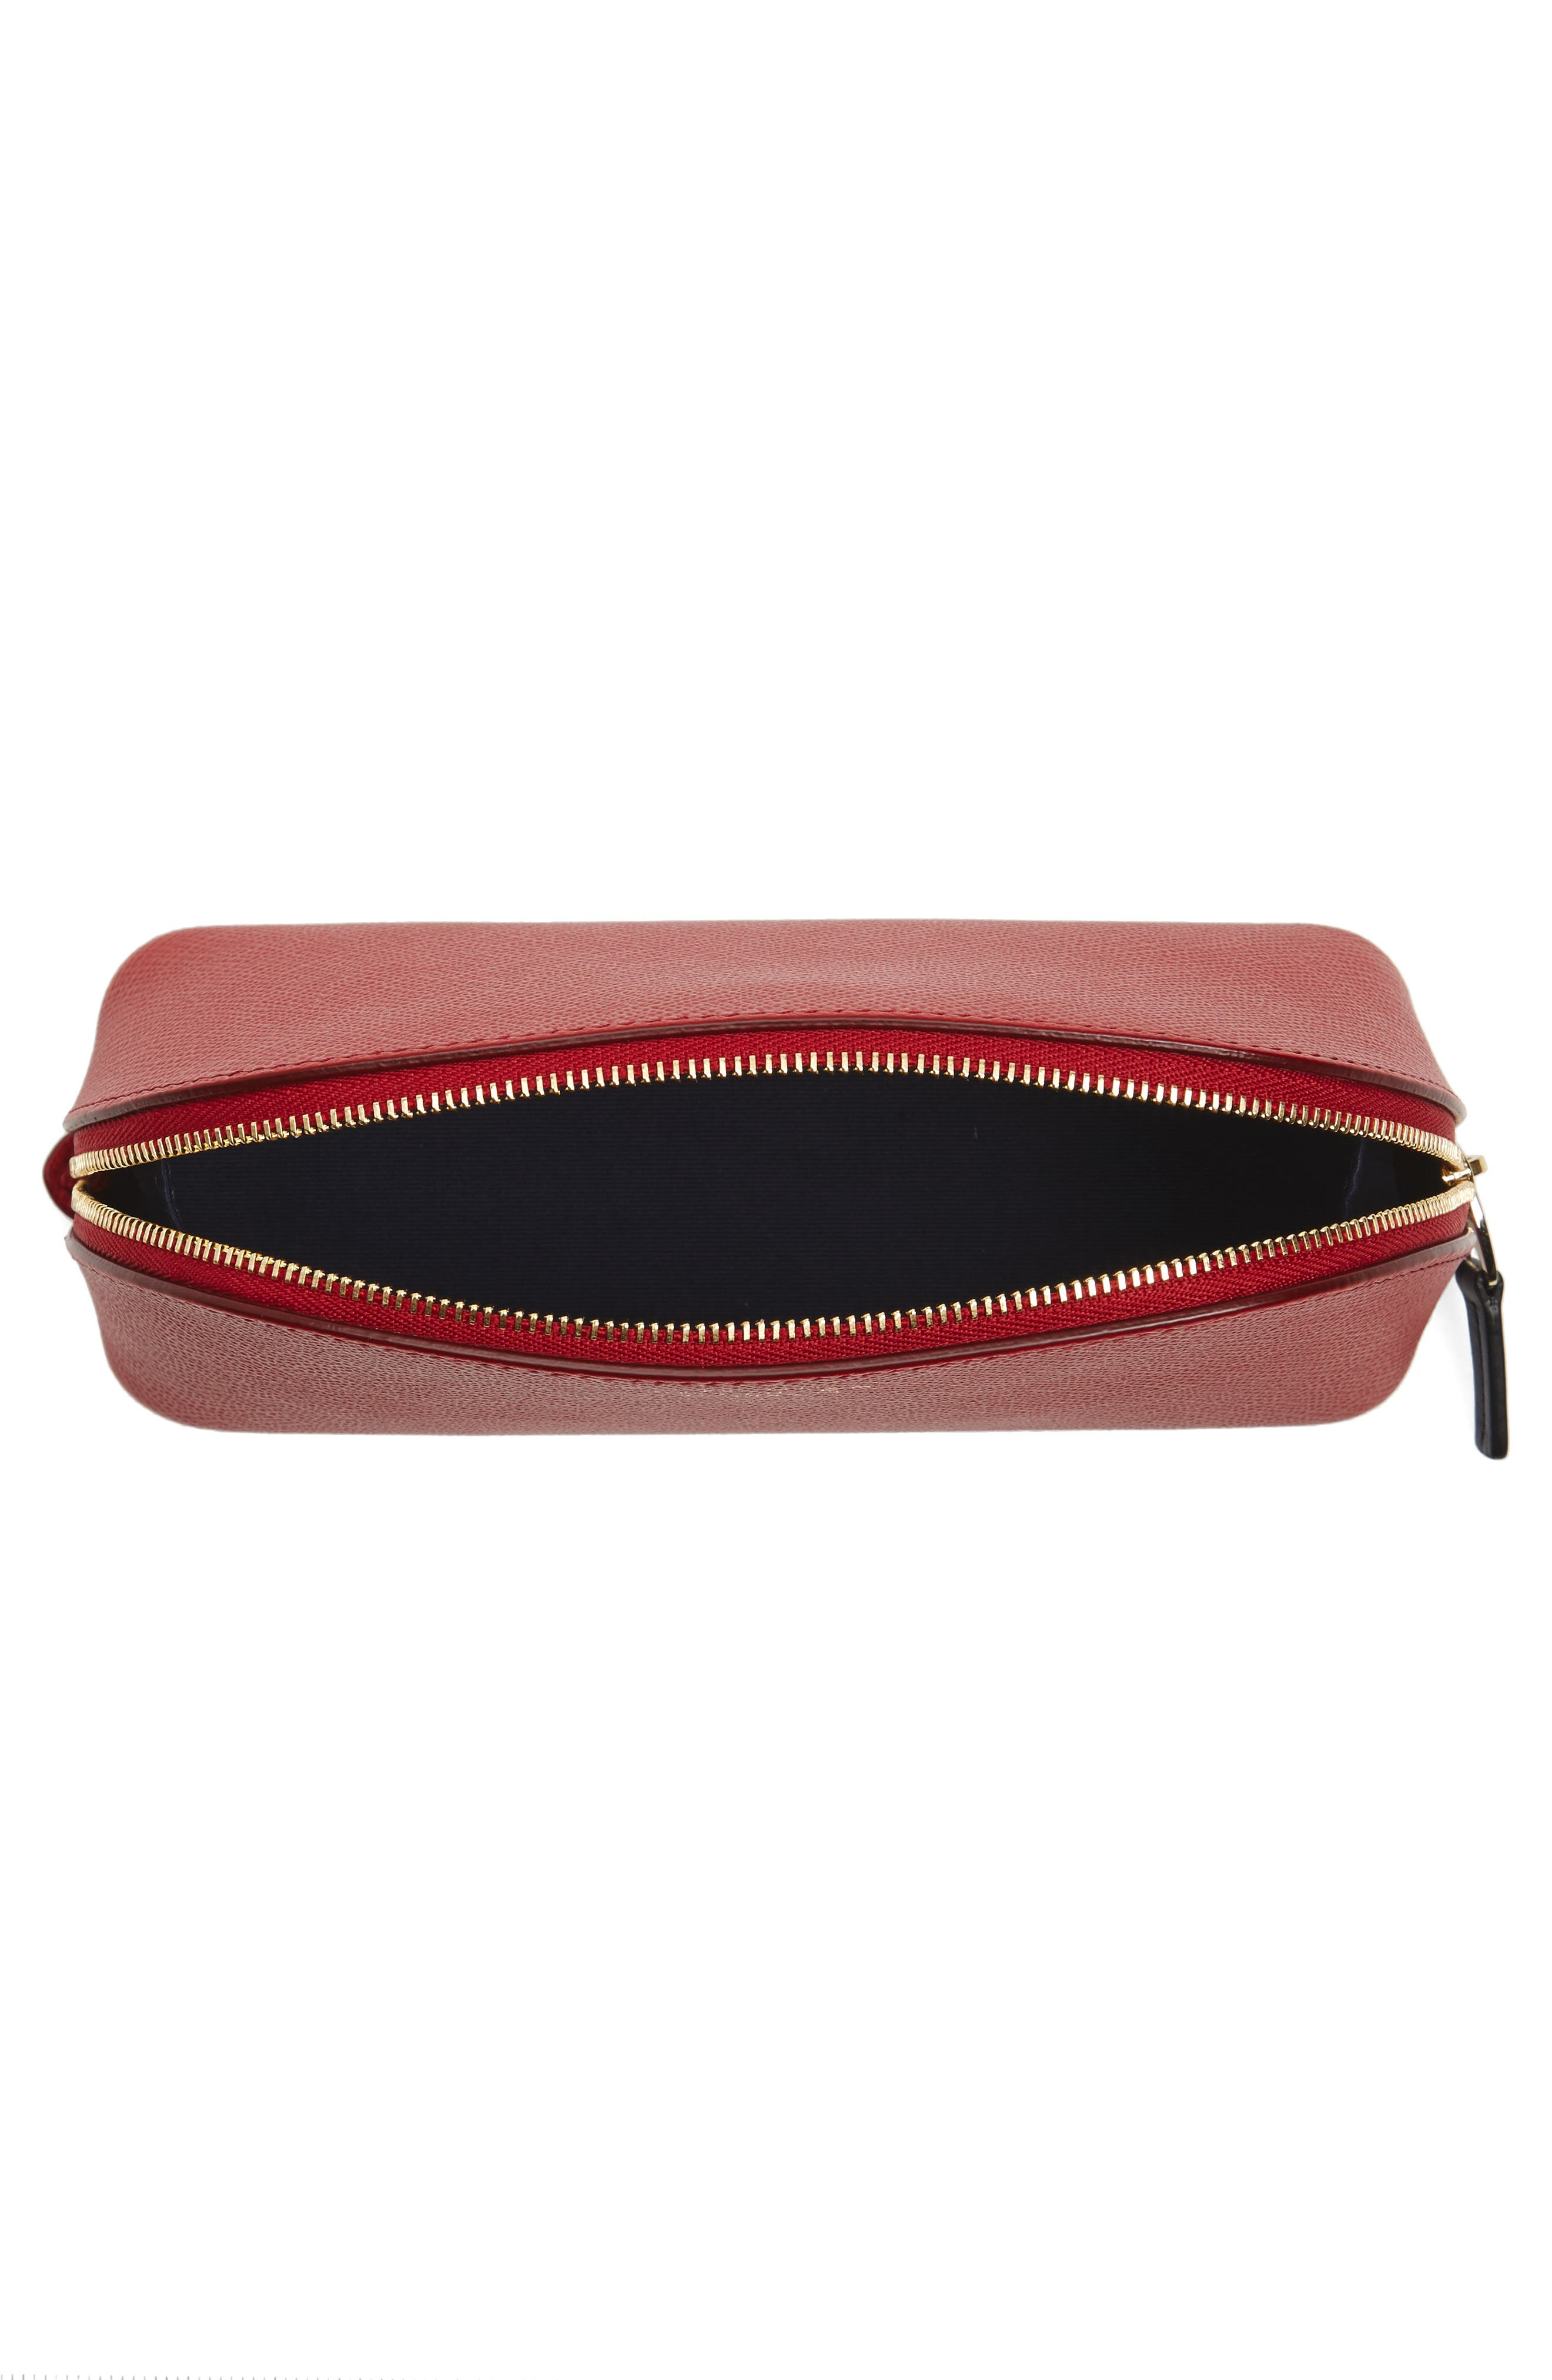 Small Calfskin Leather Cosmetics Case,                             Alternate thumbnail 4, color,                             600